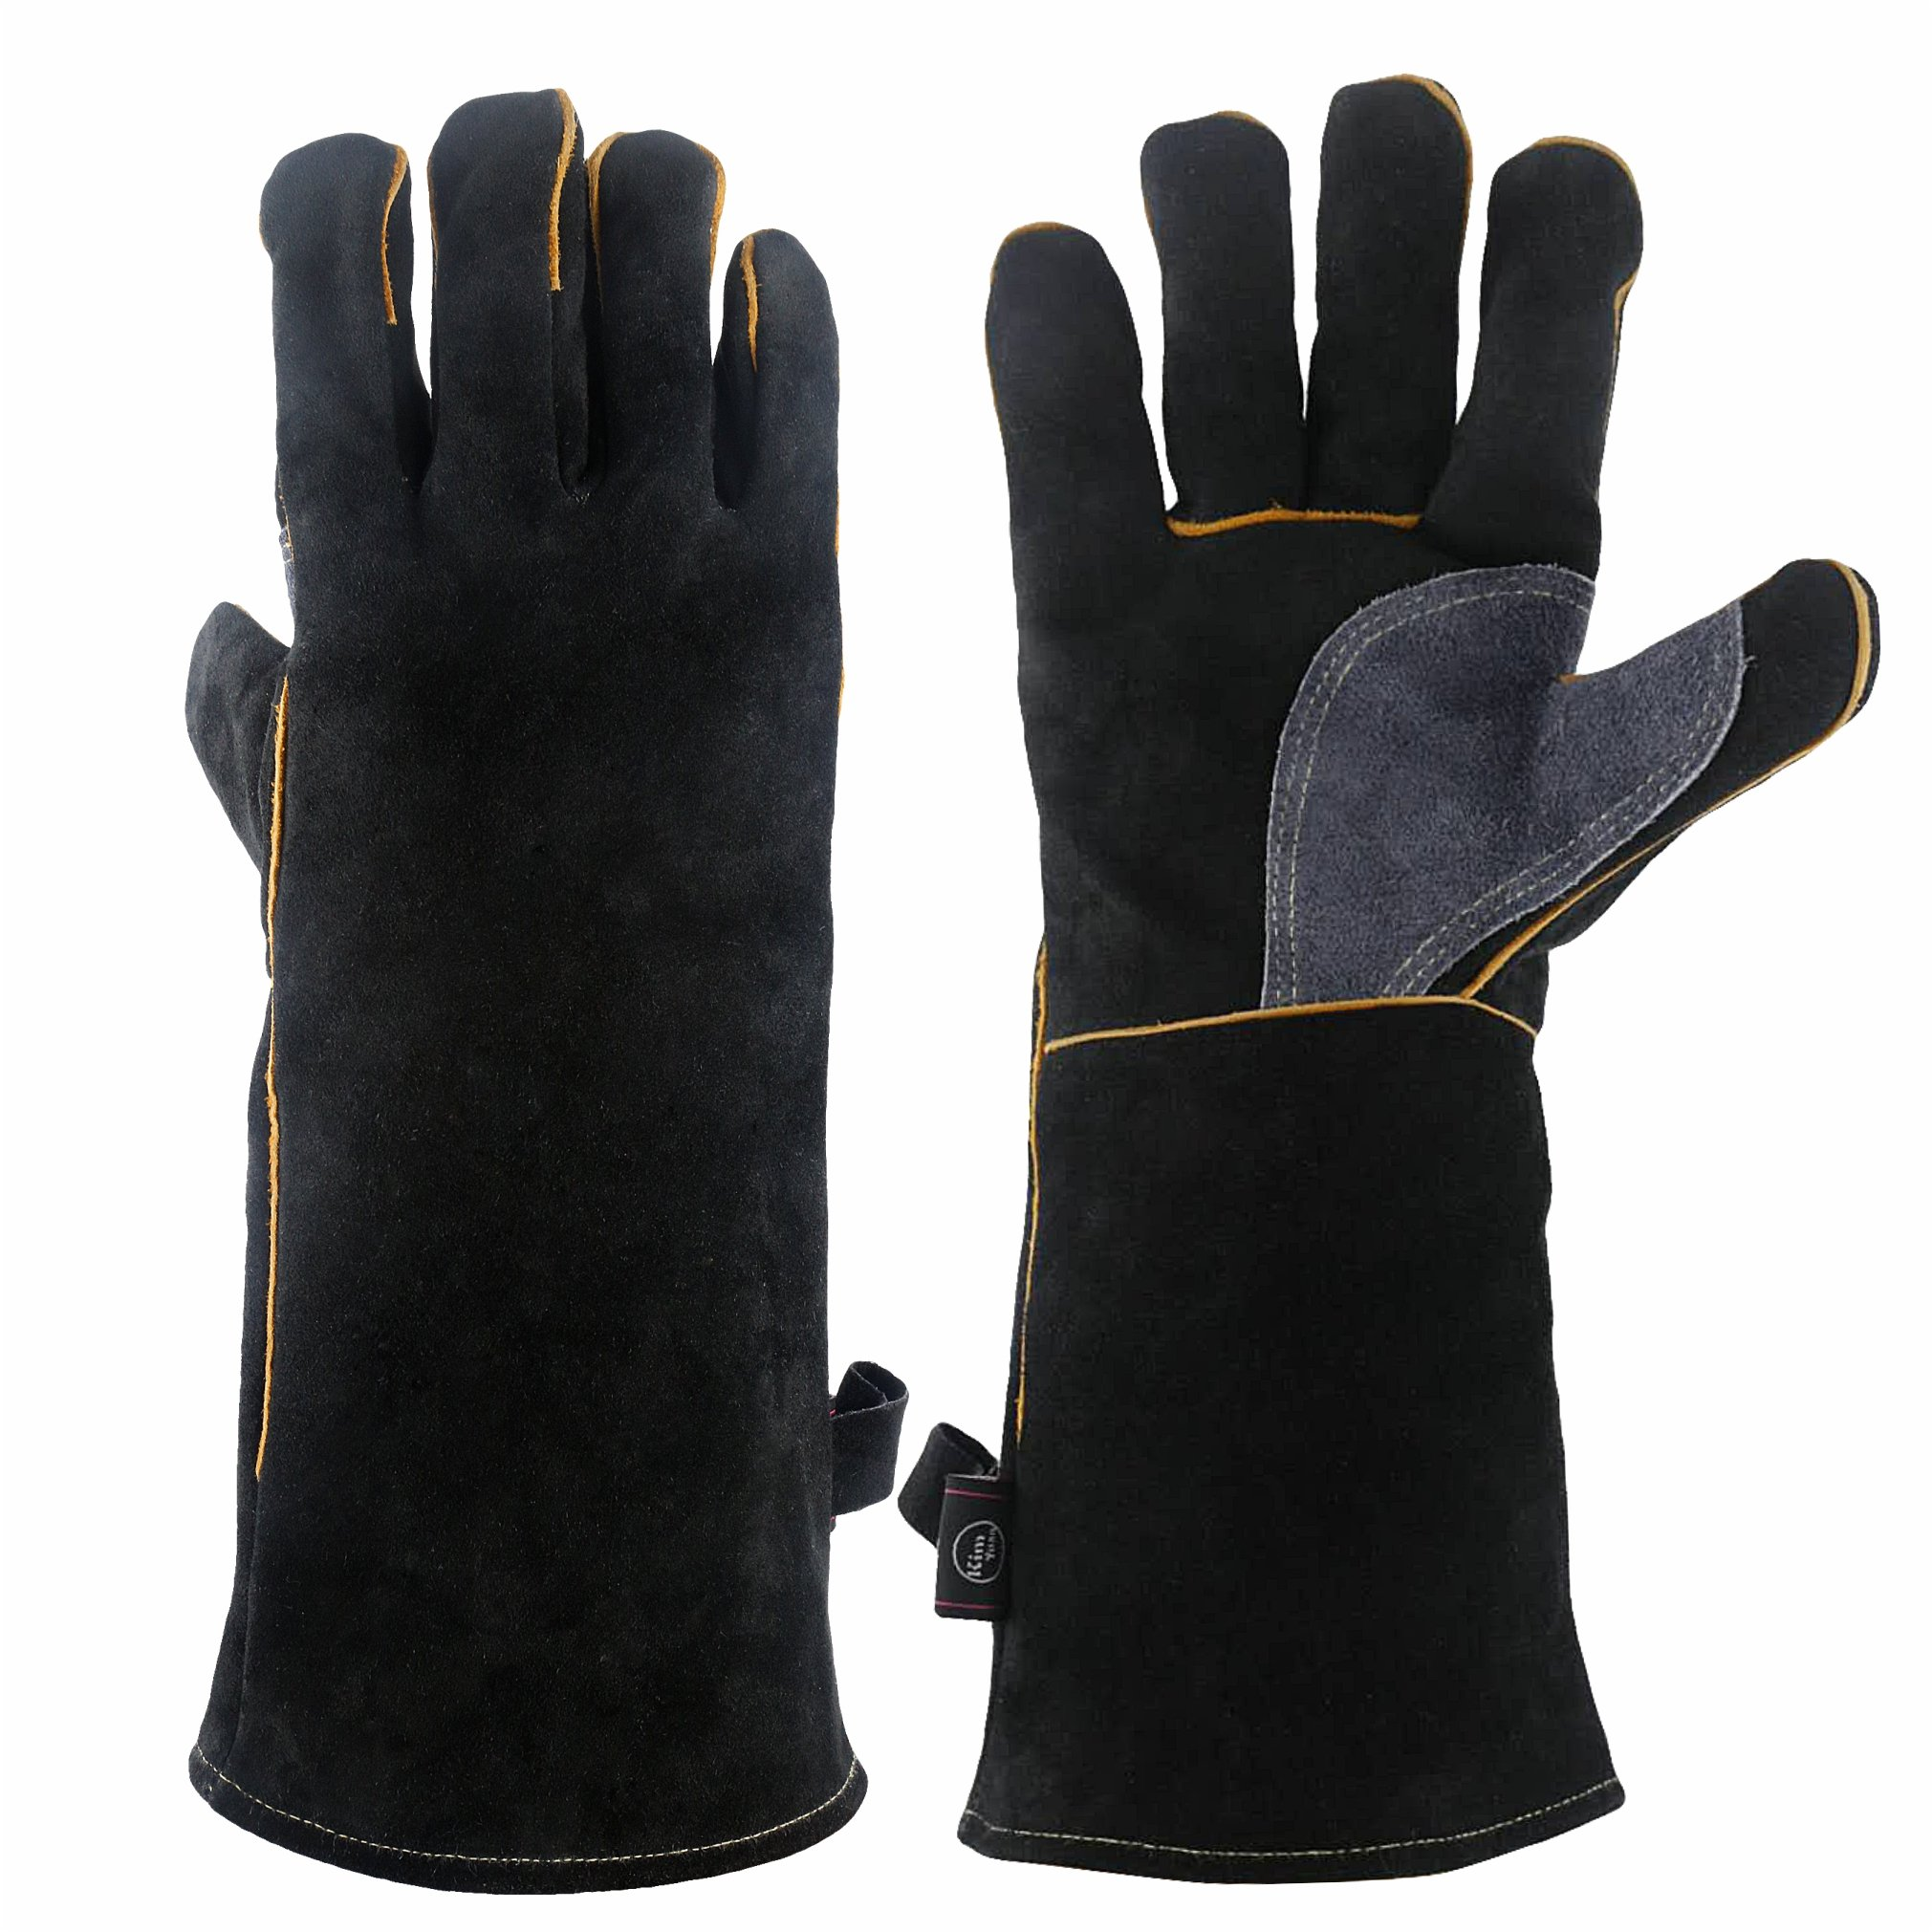 KIM YUAN Extreme Heat & Fire Resistant Gloves Leather with Kevlar Stitching,Mitts Perfect for Fireplace, Stove, Oven, Grill, Welding, BBQ, Mig, Pot Holder, Animal Handling, Black-Grey 16 inches by KIM YUAN